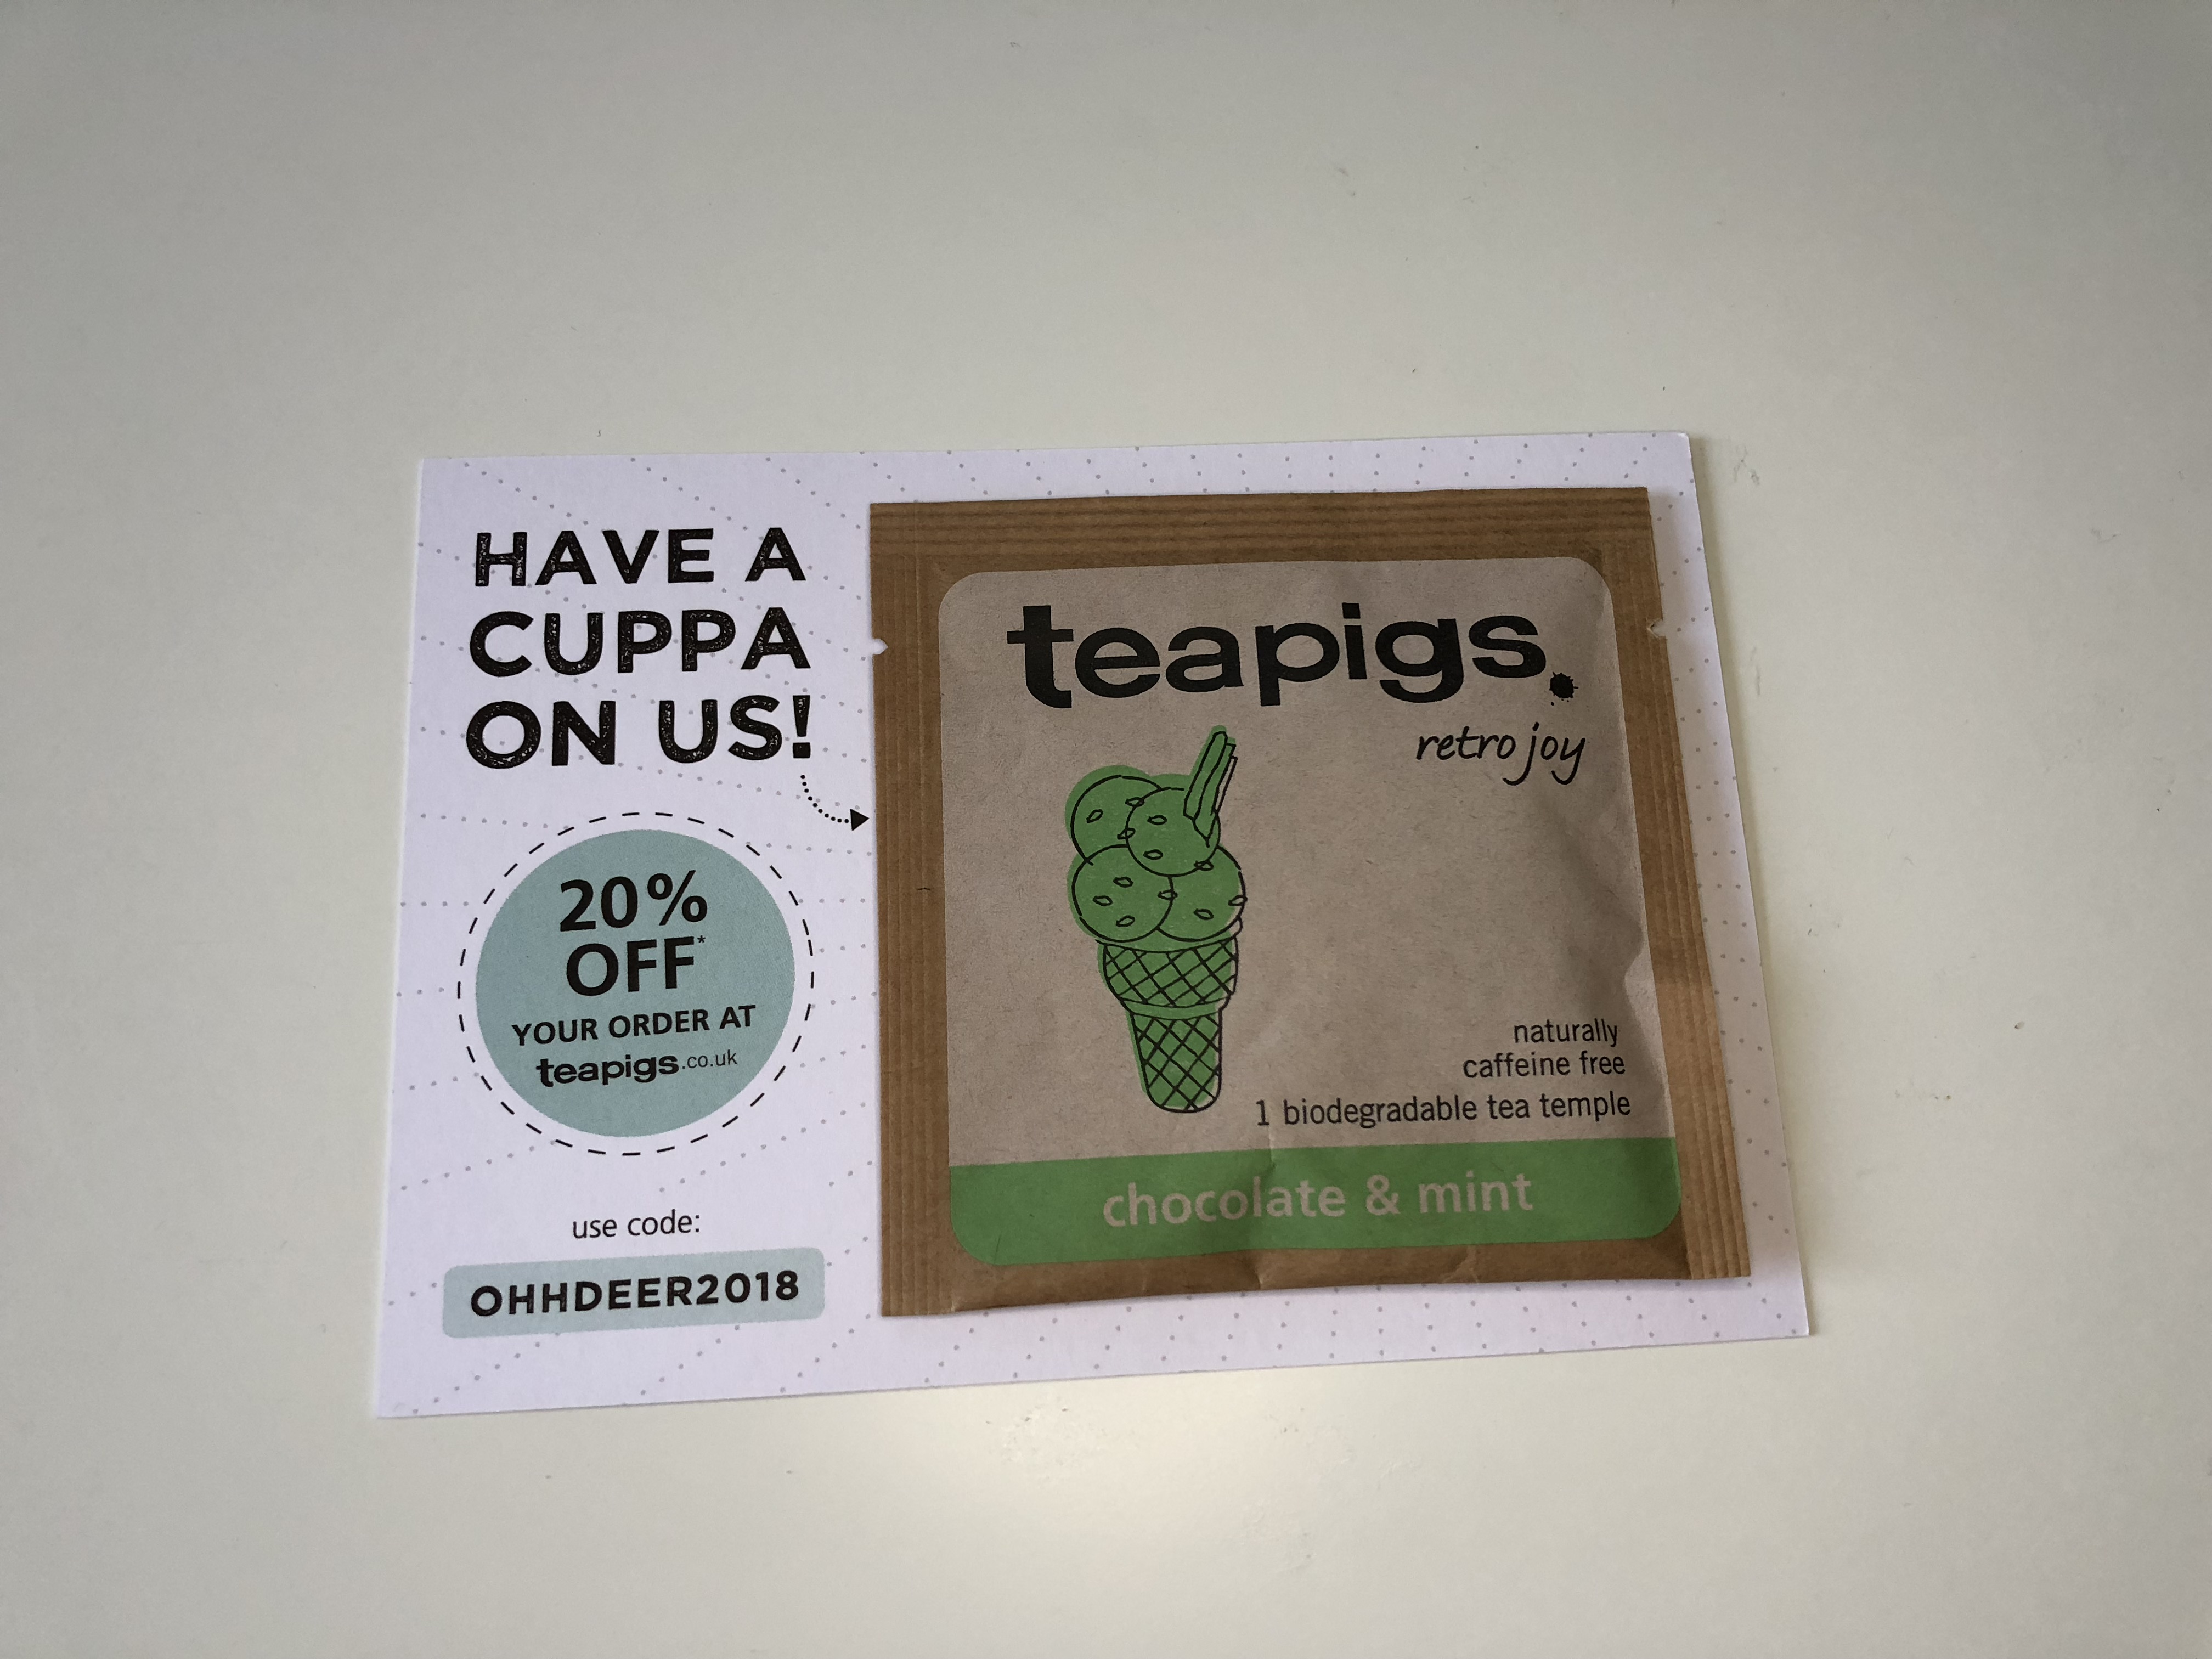 tea pigs products